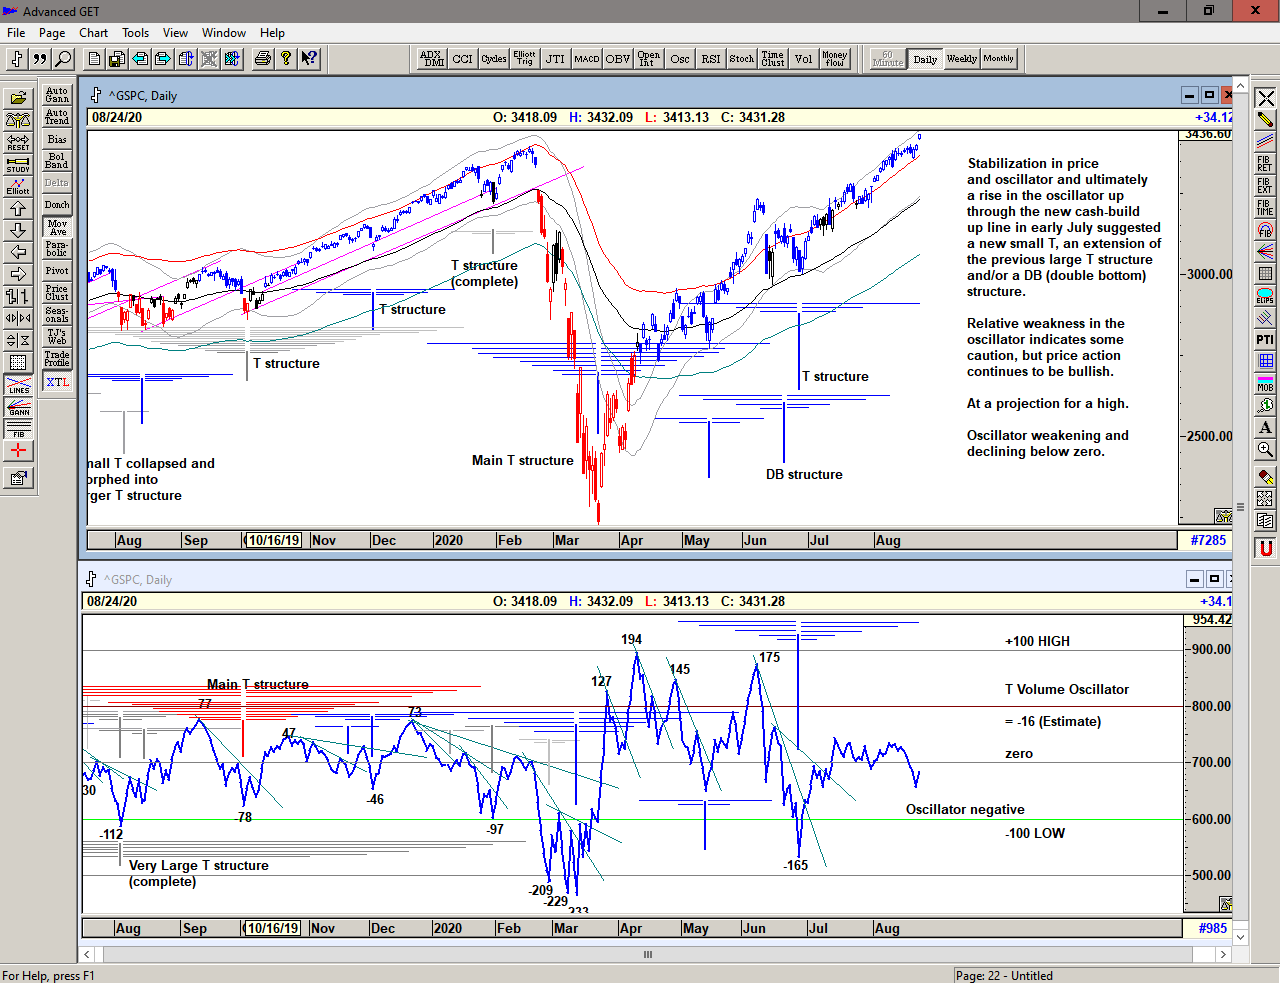 Chart of S&P 500 with T volume oscillator for 25 August 2020